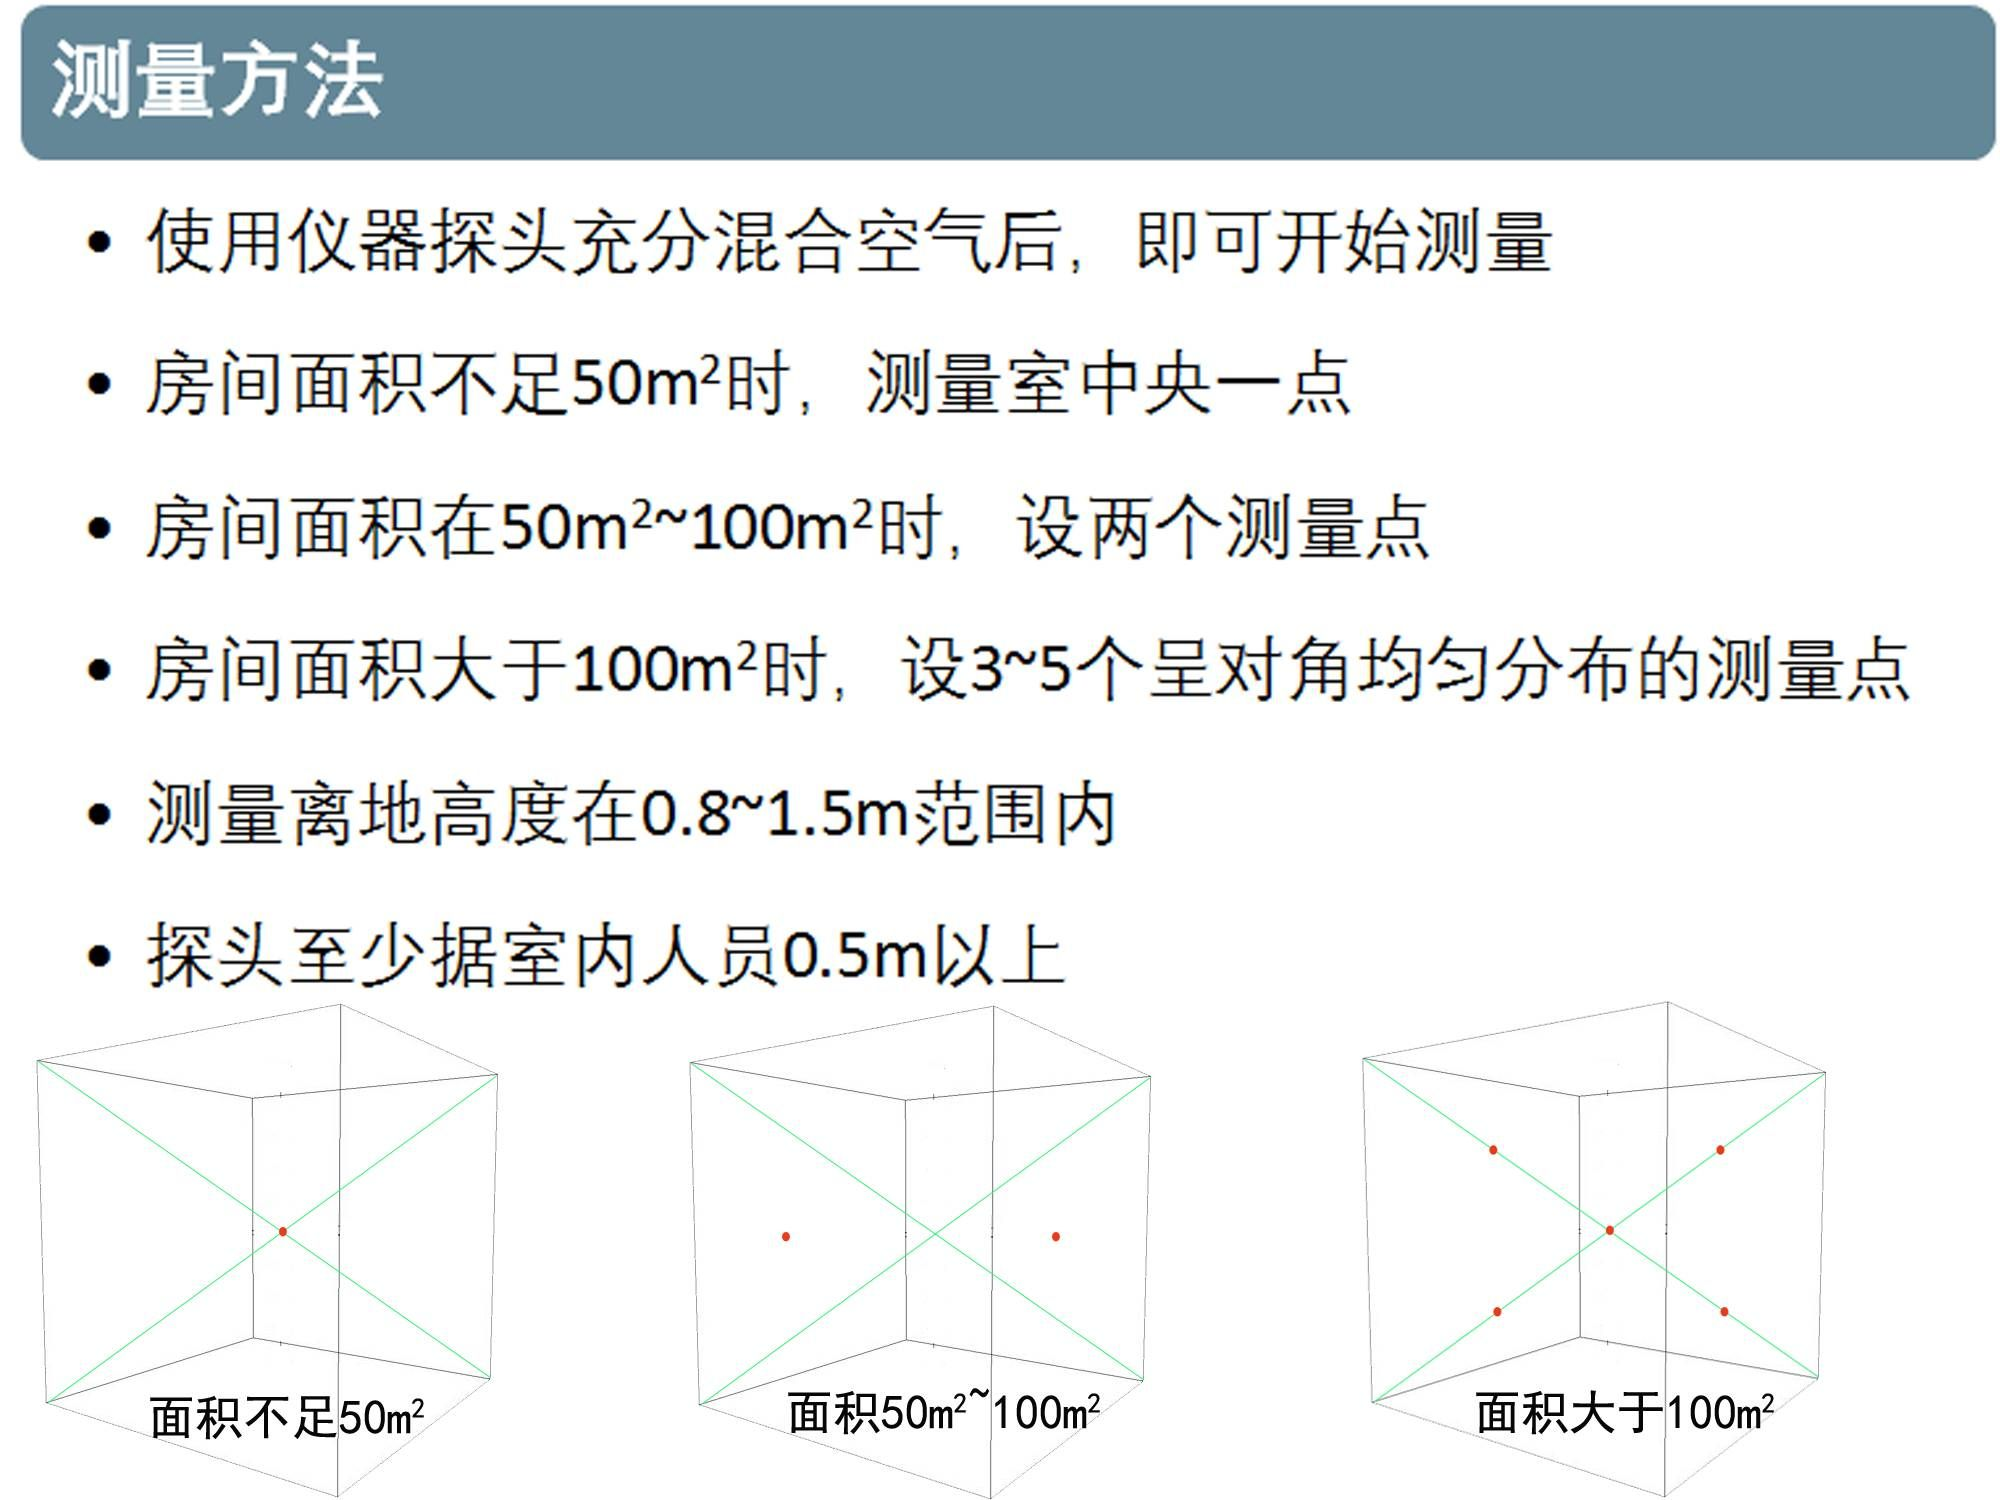 cn-20170928-applications-hvacr-indoor-air-quality04.png